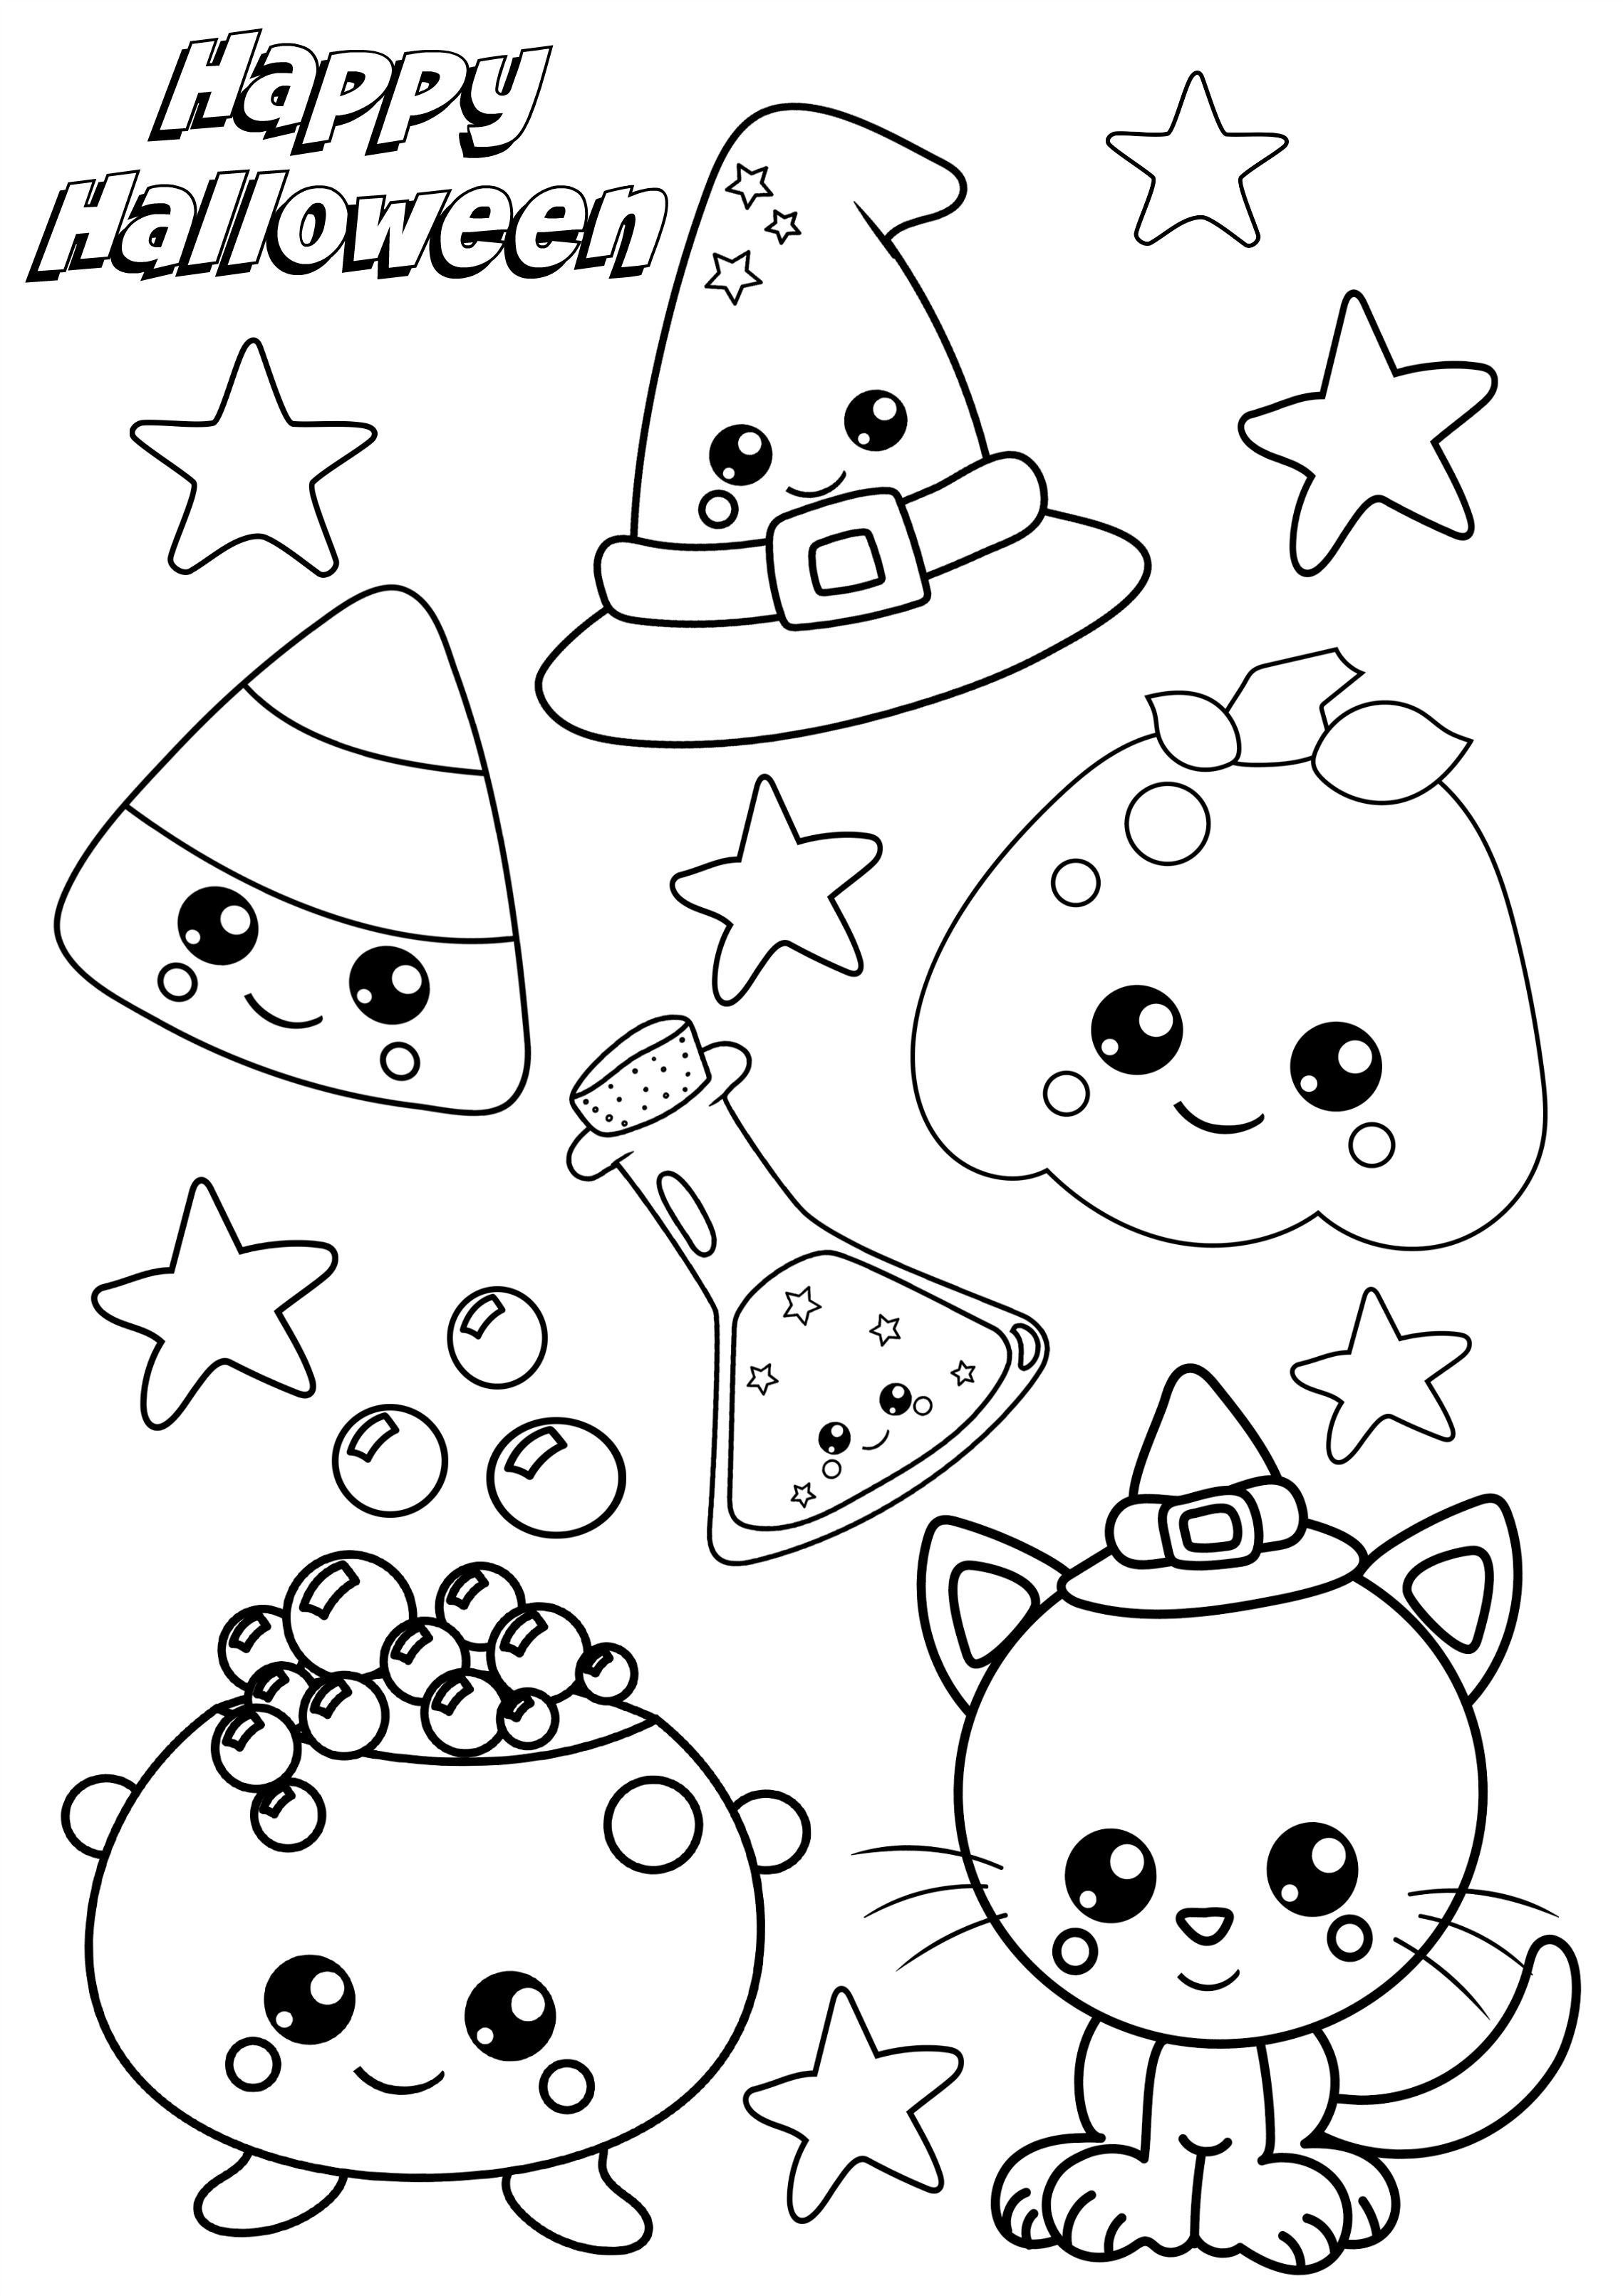 Halloweencoloringpages In 2020 Halloween Coloring Pages Halloween Coloring Free Halloween Coloring Pages